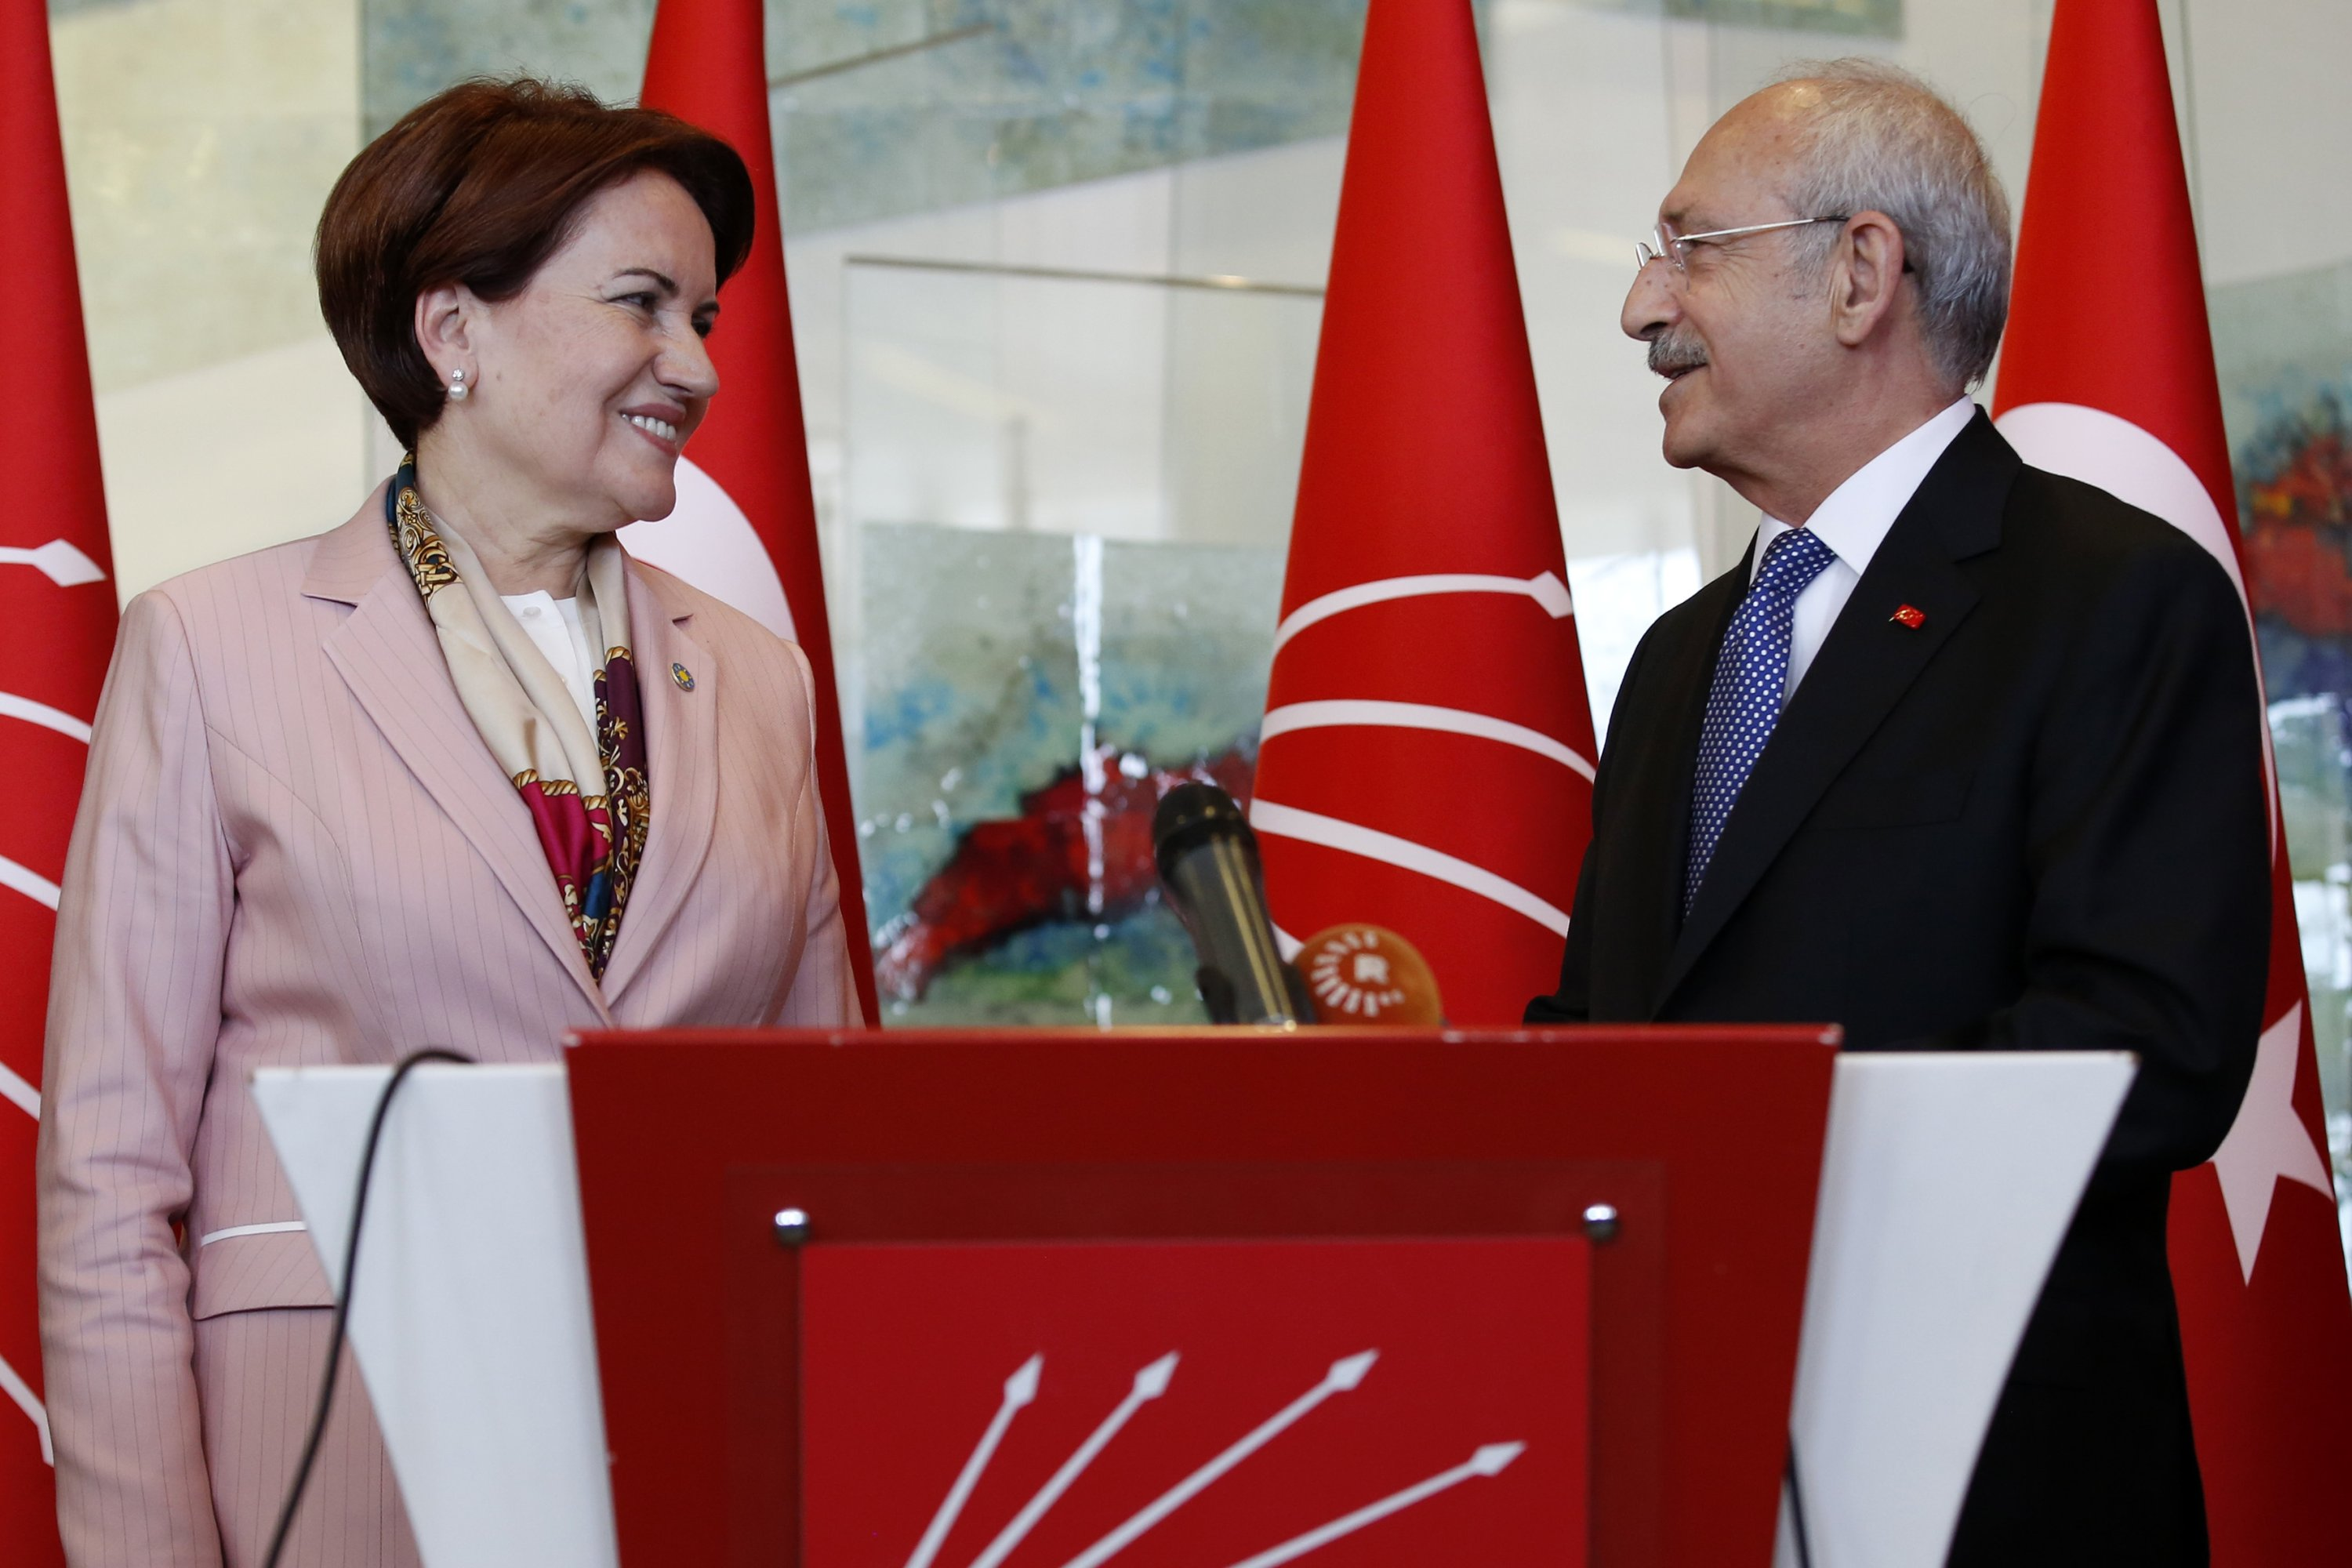 Kemal Kılıçdaroğlu (R), chairperson of the Republican People's Party (CHP), and the leader of the Good Party (IP), Meral Akşener (L), give a joint press conference at CHP headquarters in Ankara, Turkey, April 25, 2018. (Getty Images Photo)